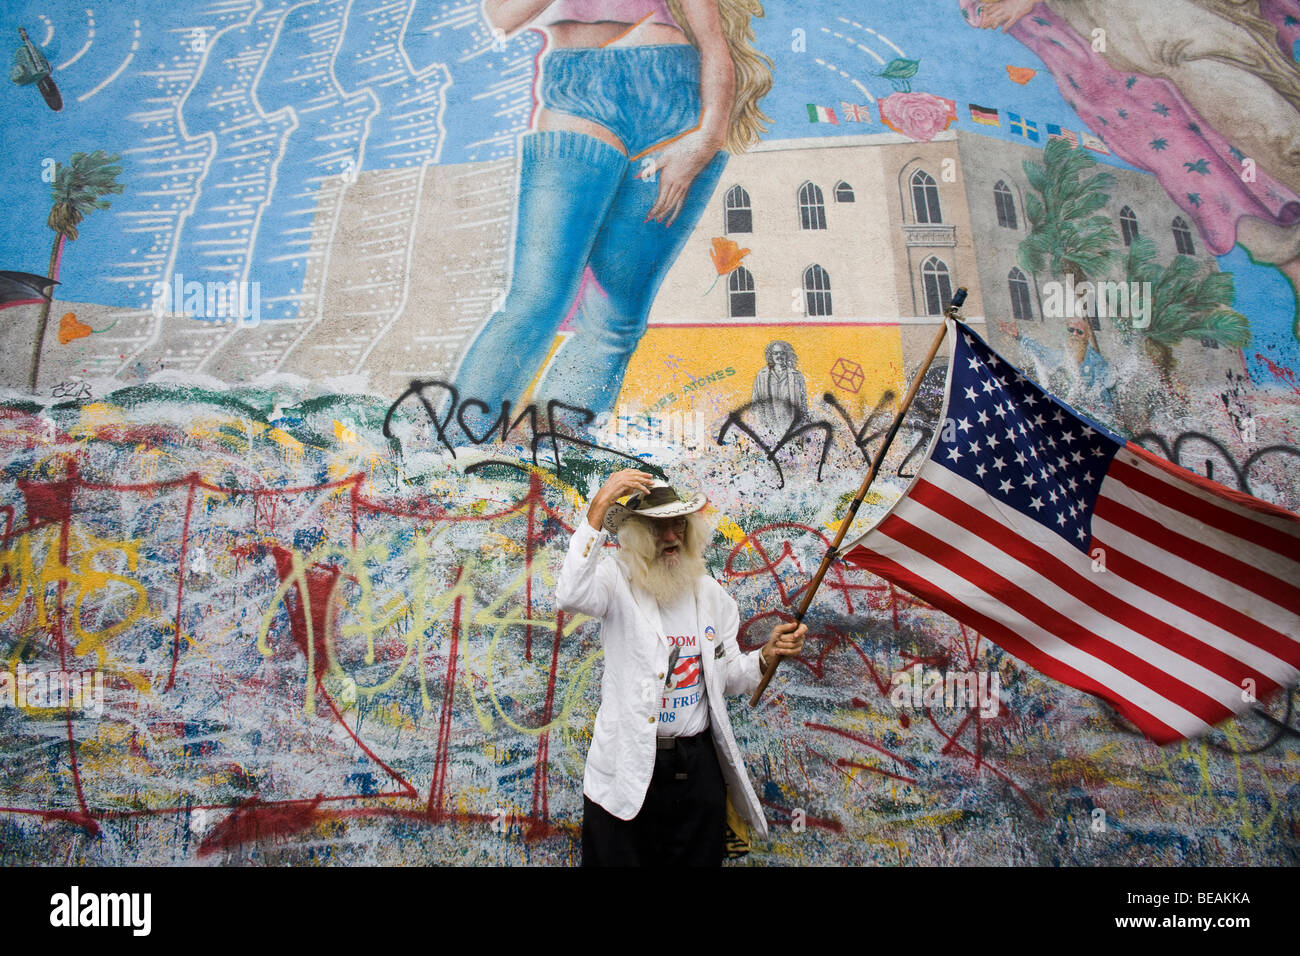 A patriotic resident of Venice Beach, Los Angeles County, California - Stock Image